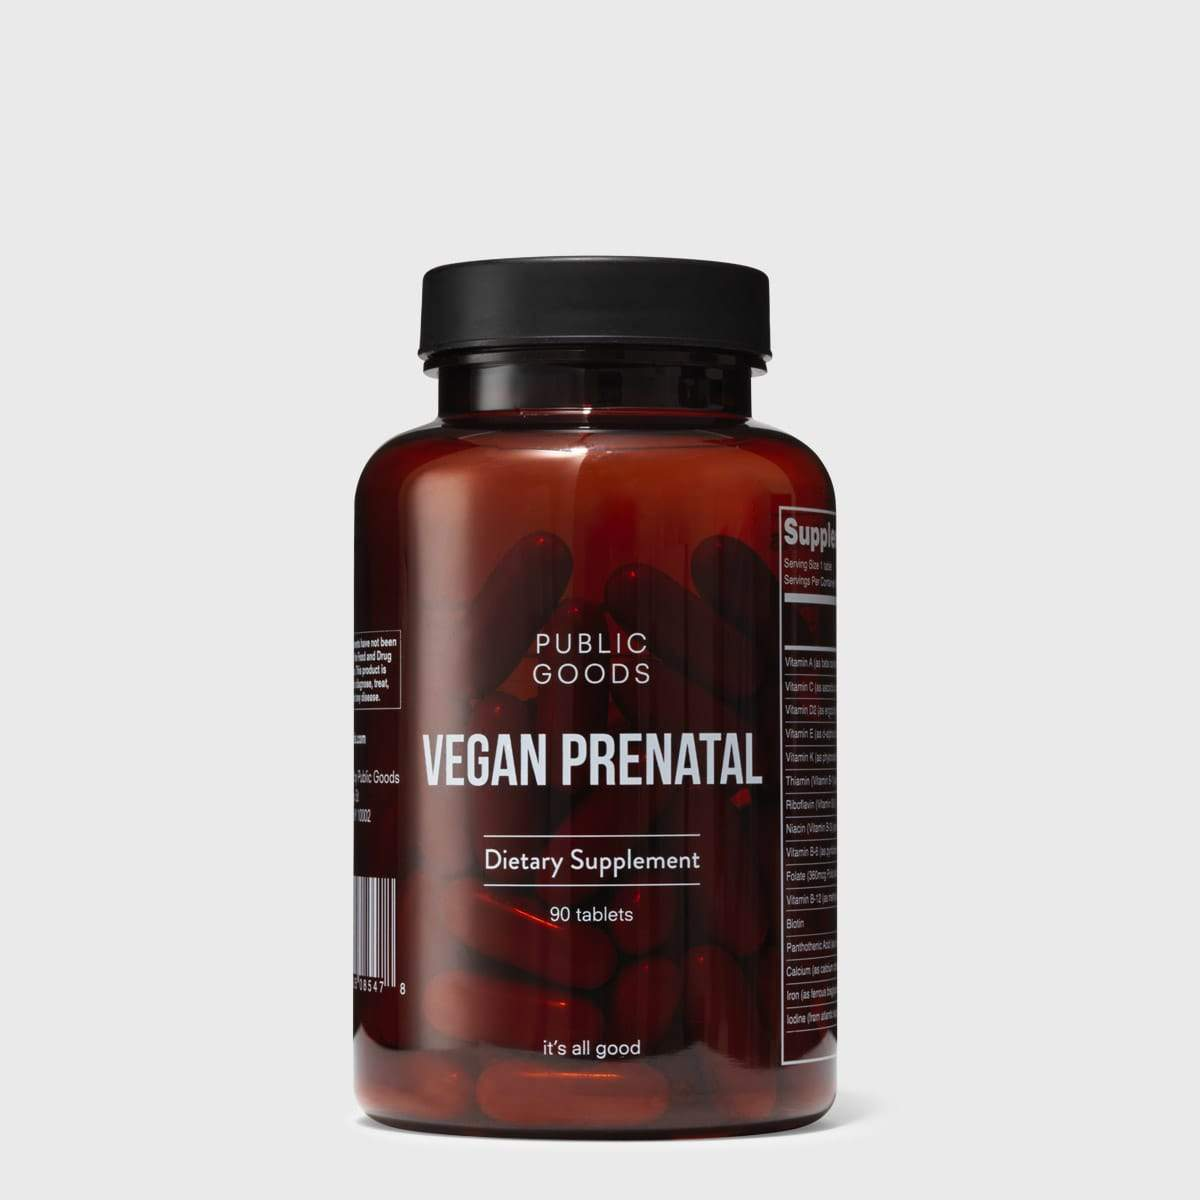 Public Goods Supplement Vegan Prenatal